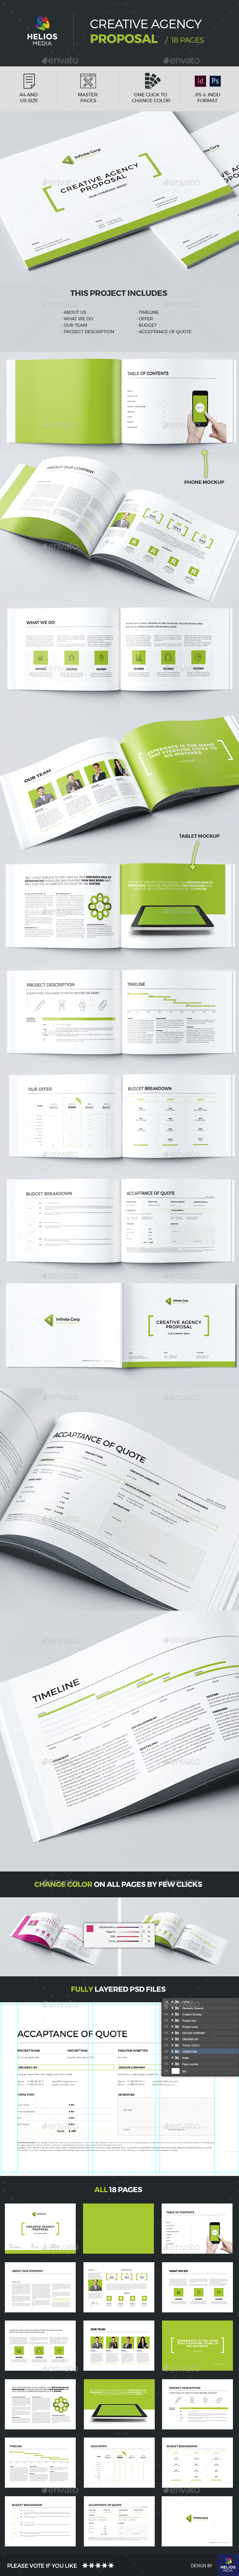 Proposal Template / Horizontal - Proposals & Invoices Stationery